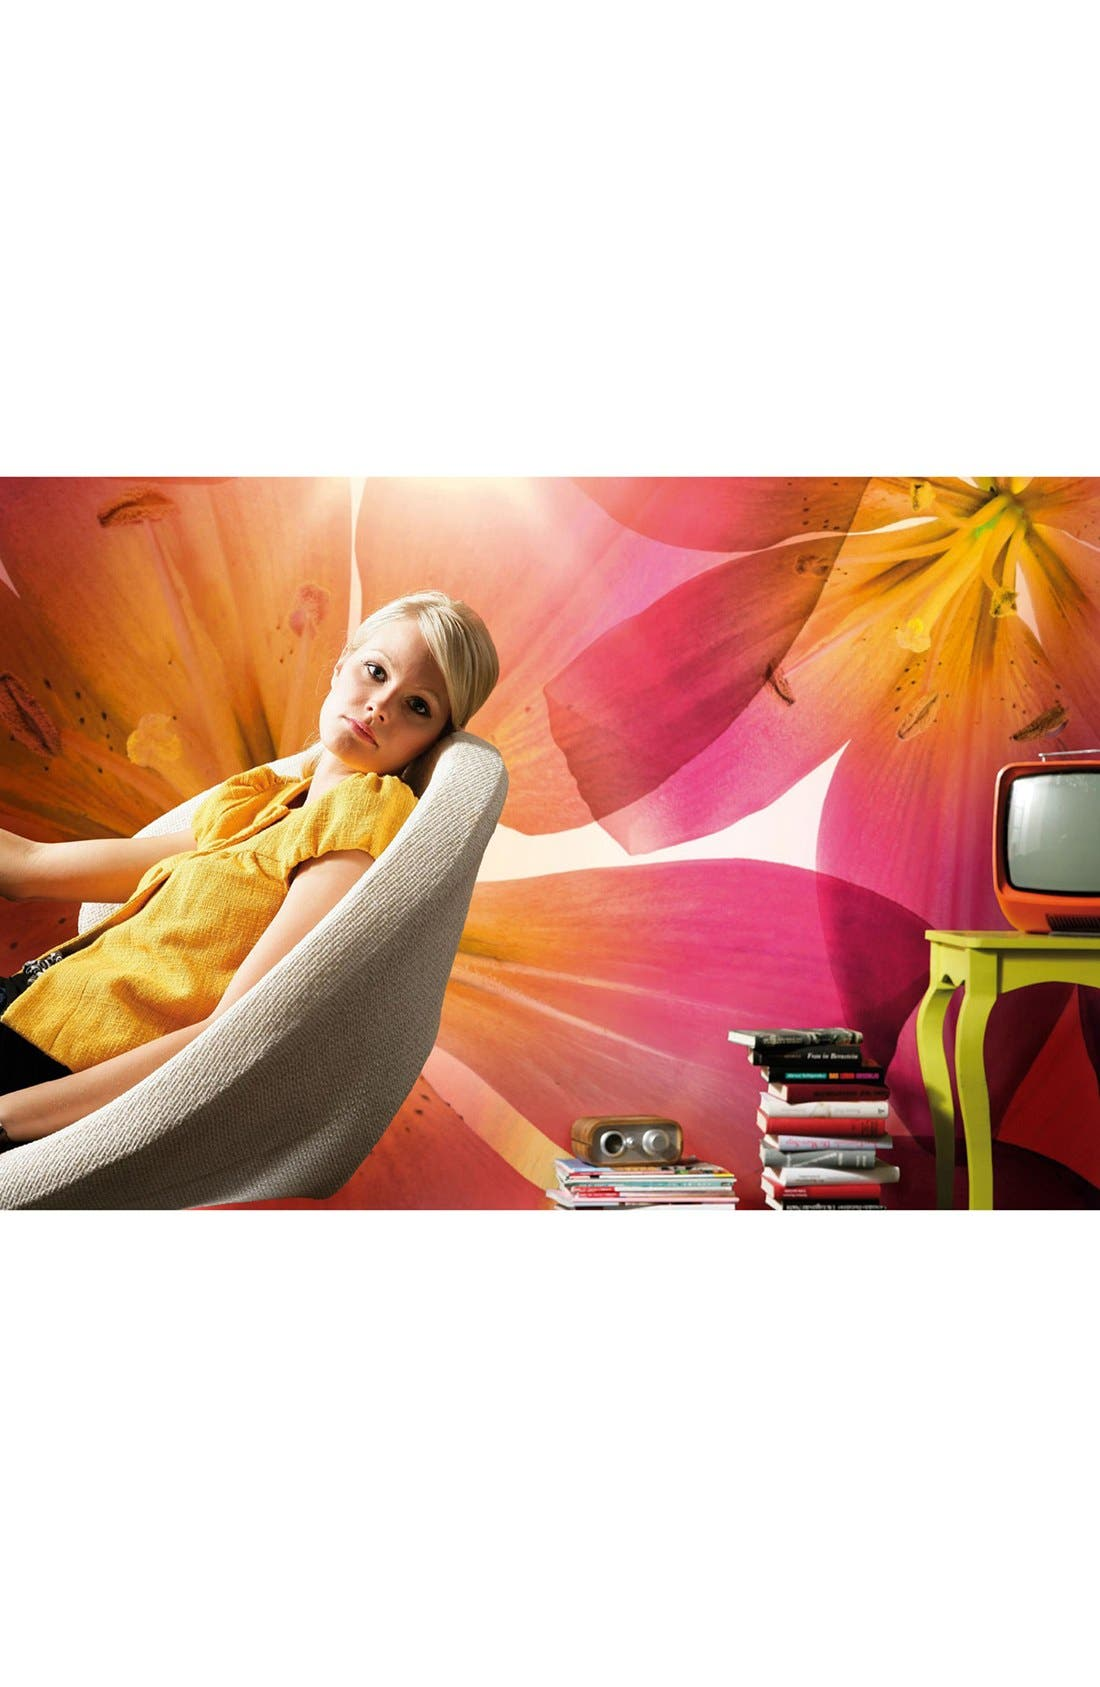 Alternate Image 1 Selected - Wallpops 'Summer Sun' Wall Mural (8-Panel)